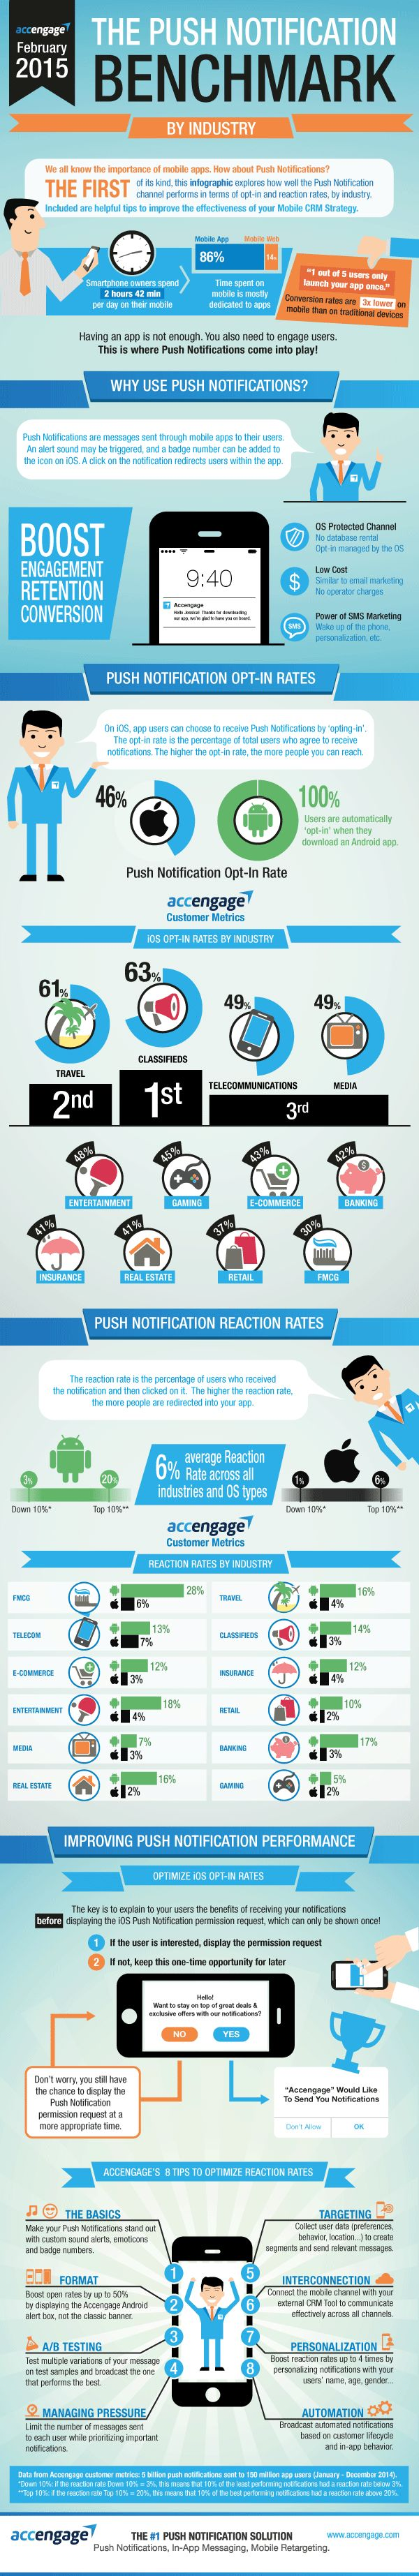 Push Notification Benchmark by Industry - Infographic Portal